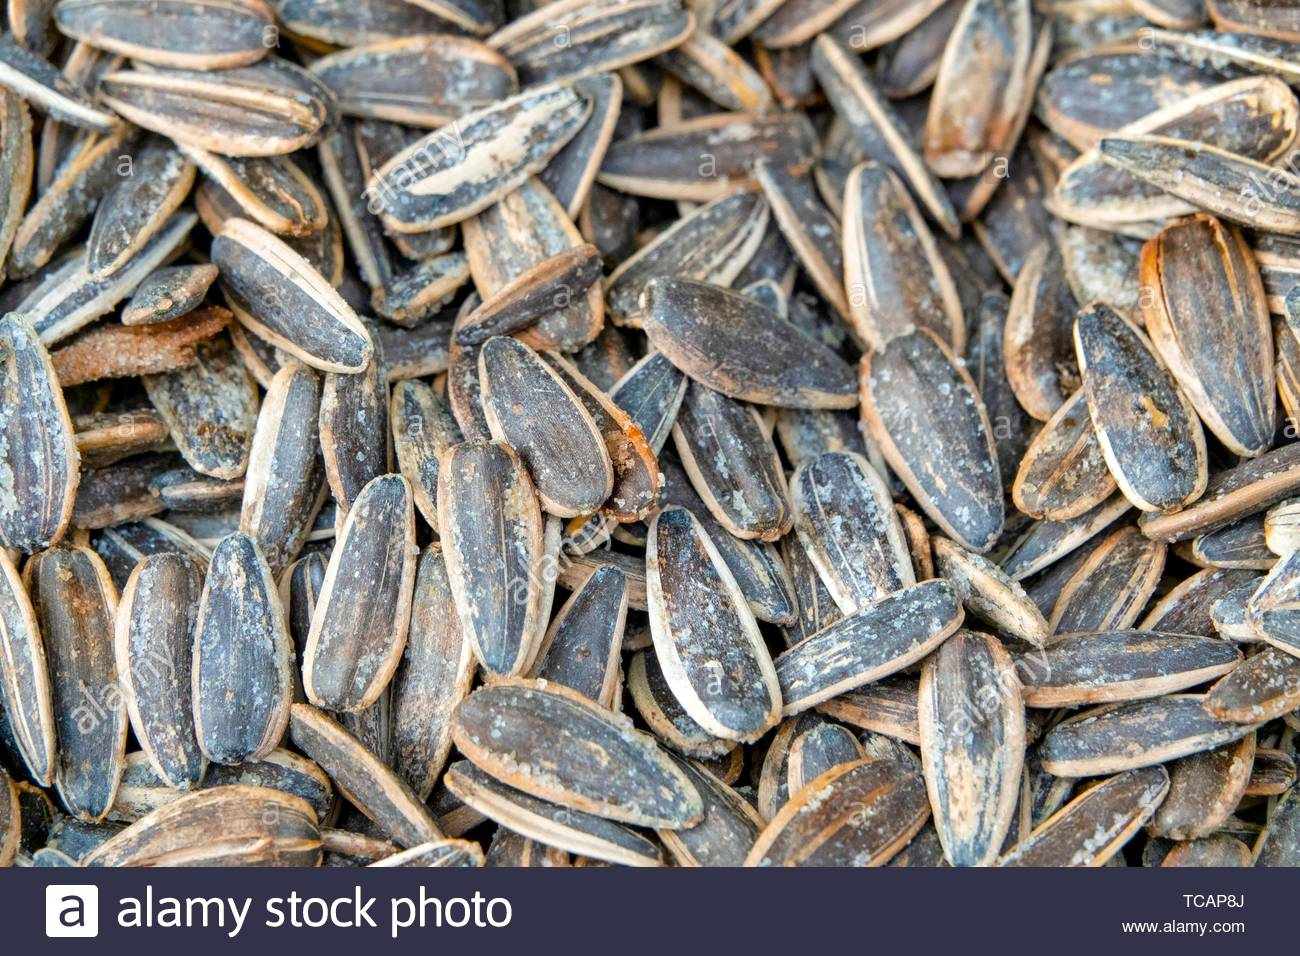 Roasted and salted sunflower seeds. - Stock Image